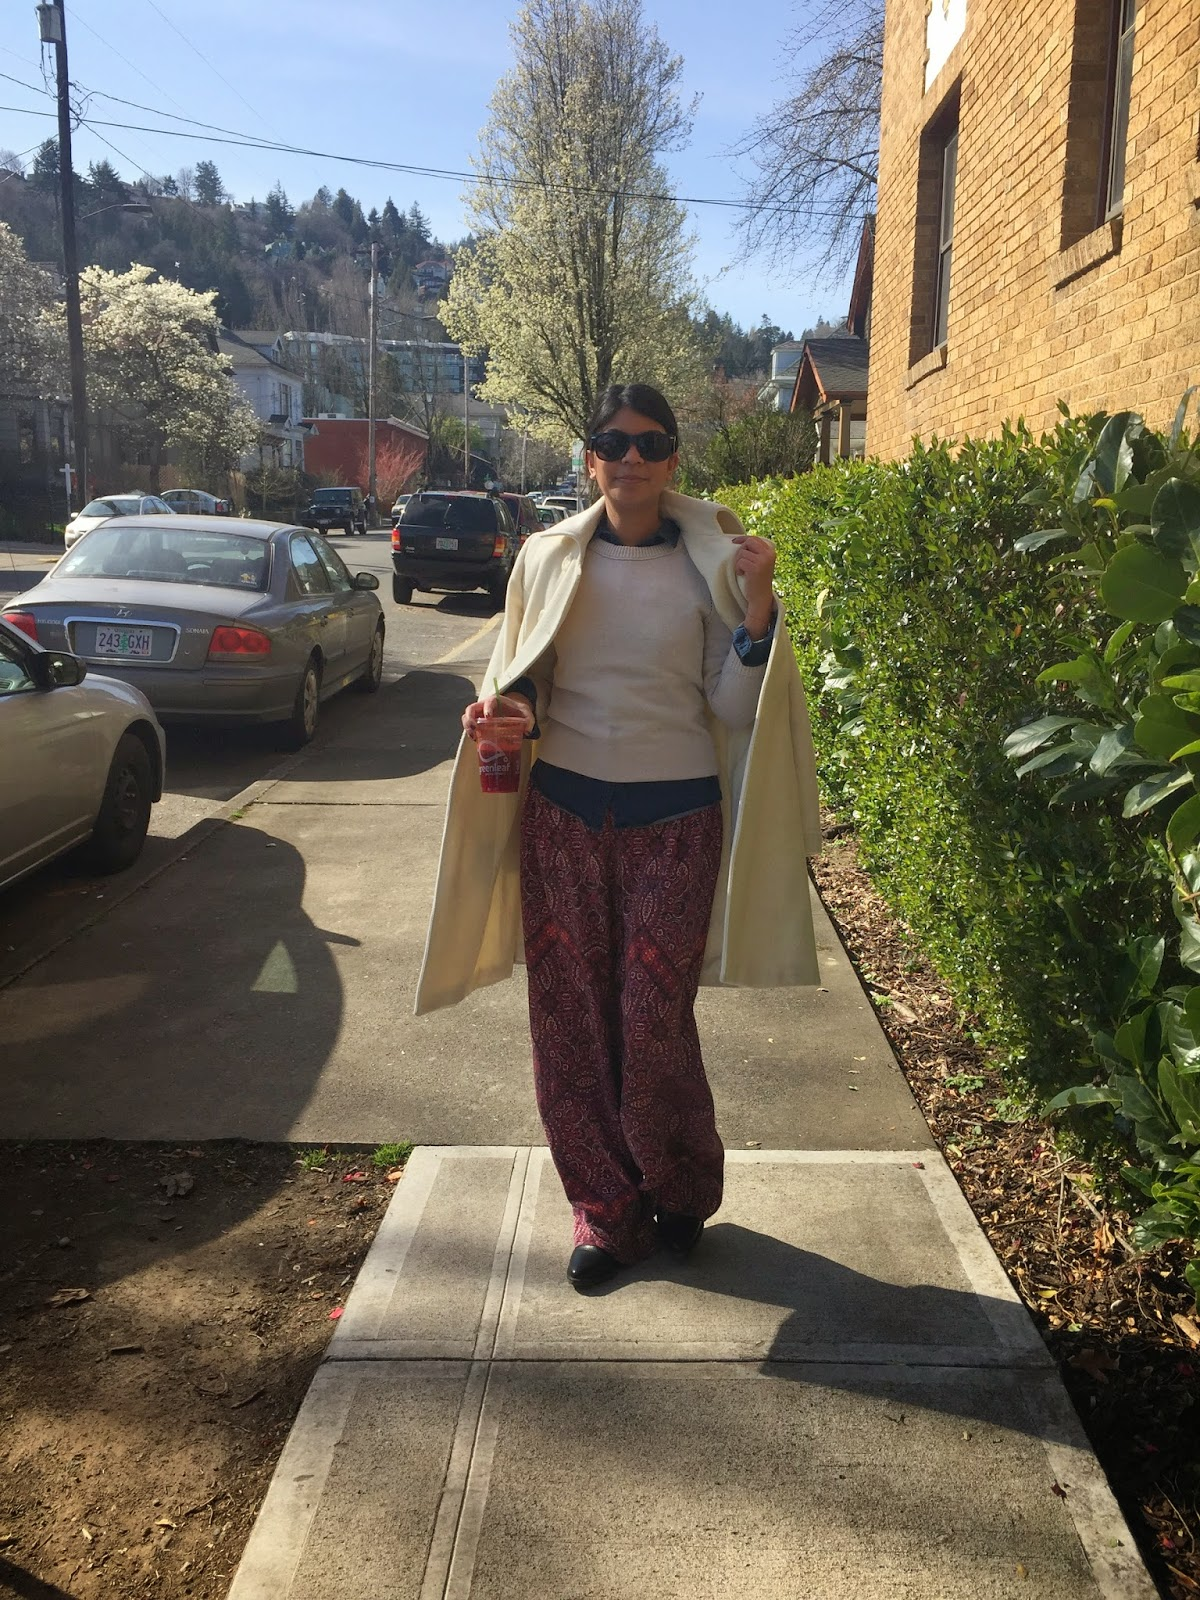 ootd, outfit of the day, portland fashion blogger, fashion blogger, fashionista, the town girls, palazzo pants, cynthia rowley, white coat, boots